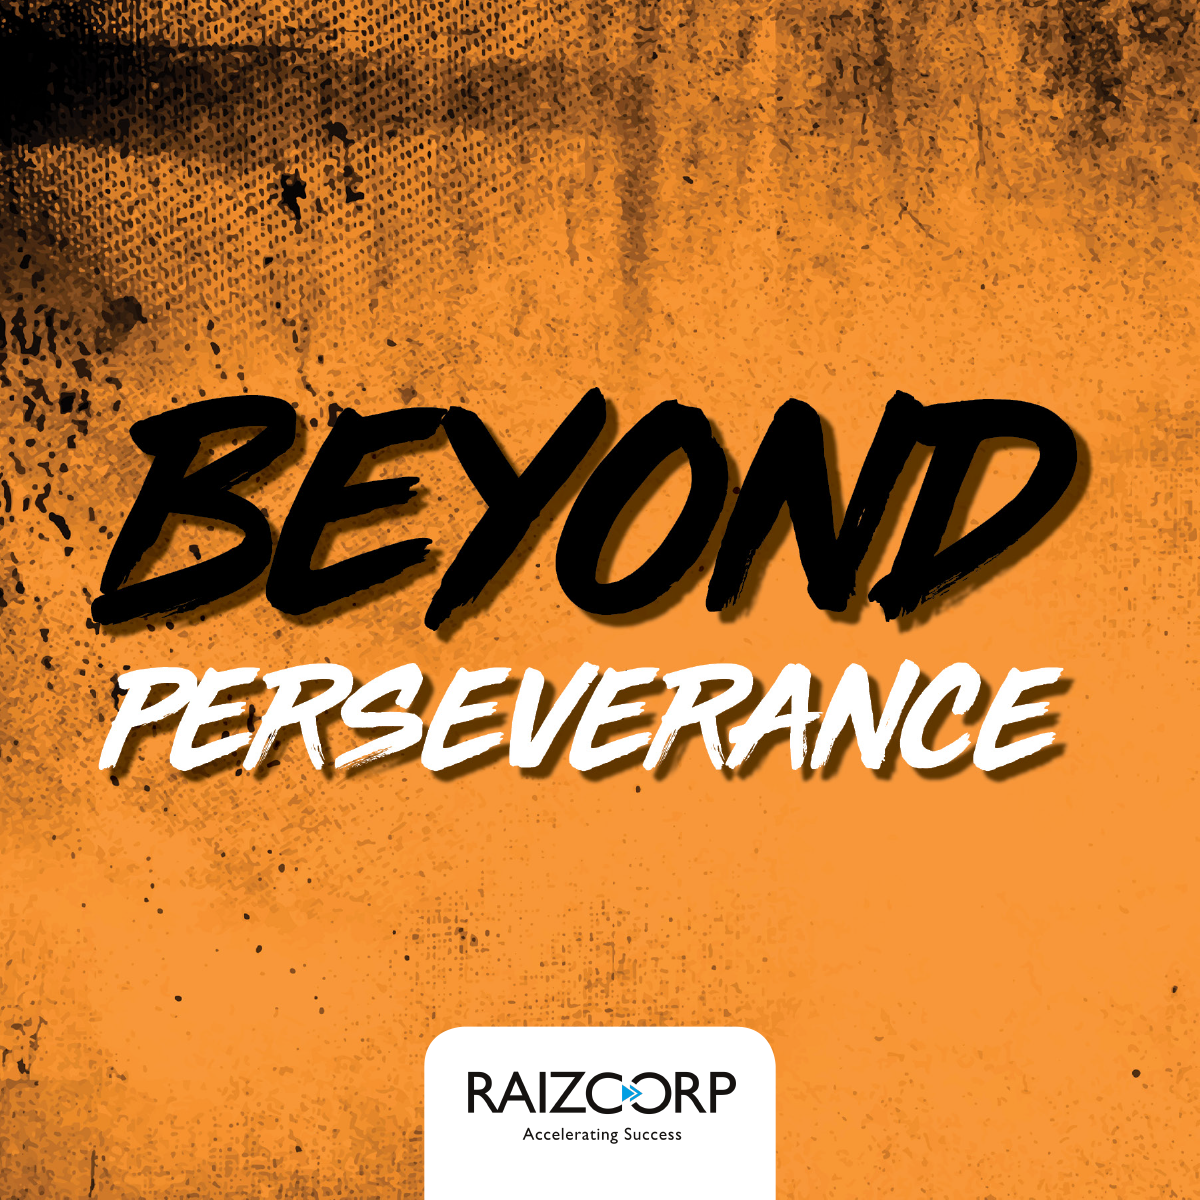 Beyond Perseverance. ep1